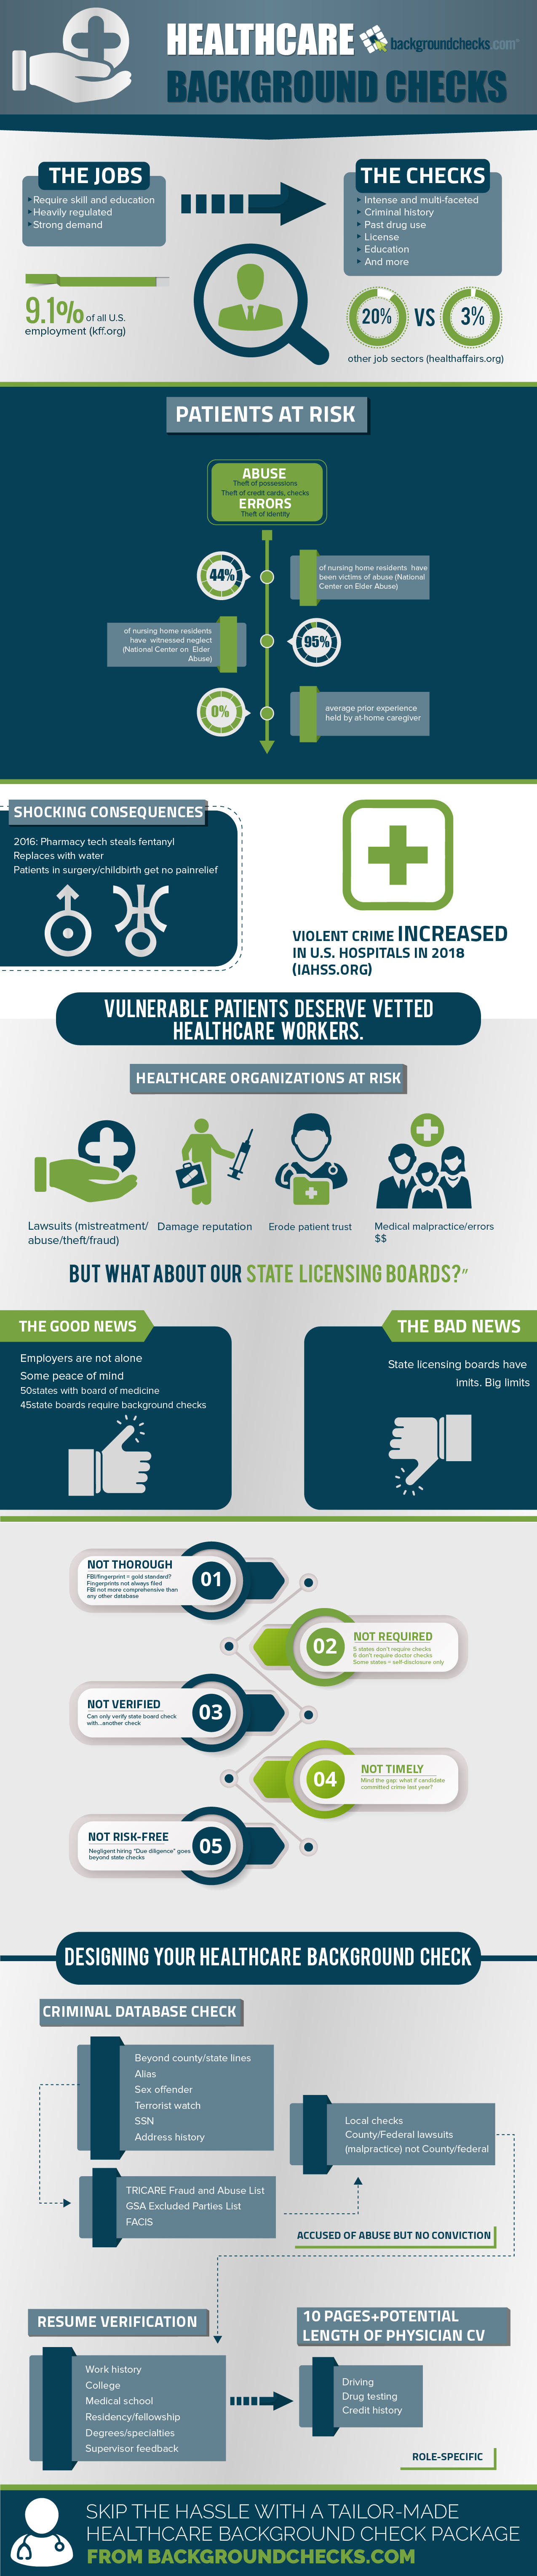 Background Checks for Healthcare Professionals